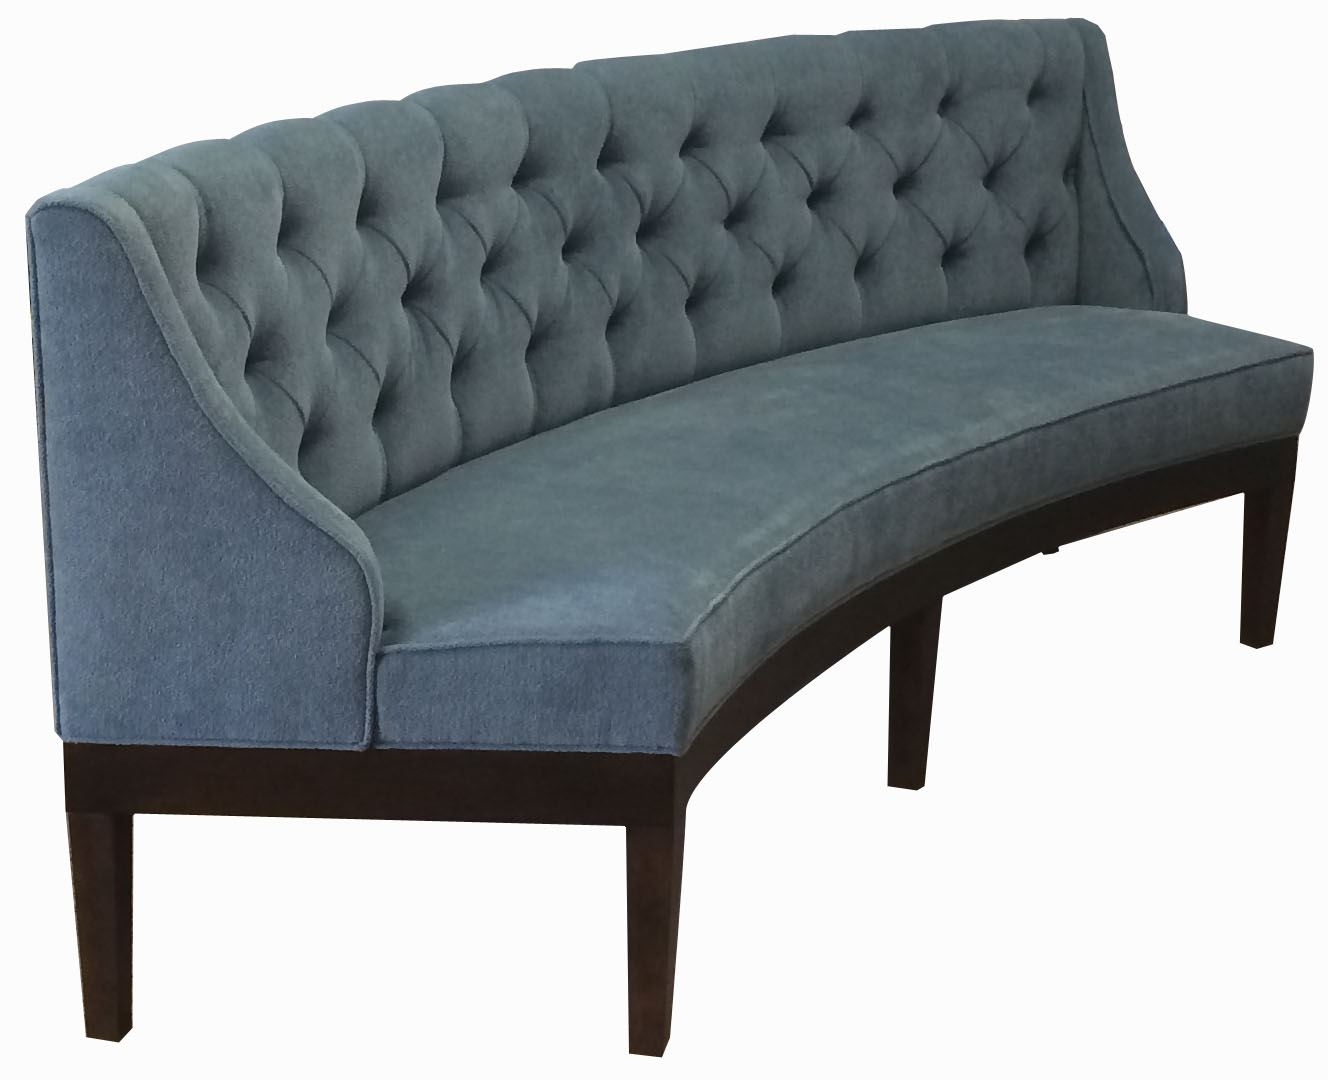 Riley Designer Banquette  Displayed In: 100% Polyester Stain Resistant Velvet   Dimensions:   L: 92″  D: 24″  H: 34″   Available in custom sizes & fabrics.    This beautiful piece of custom crafted restaurant furniture is perfect if floating in the middle of your dining room, displaying a smooth a elegant curved upholstered back.